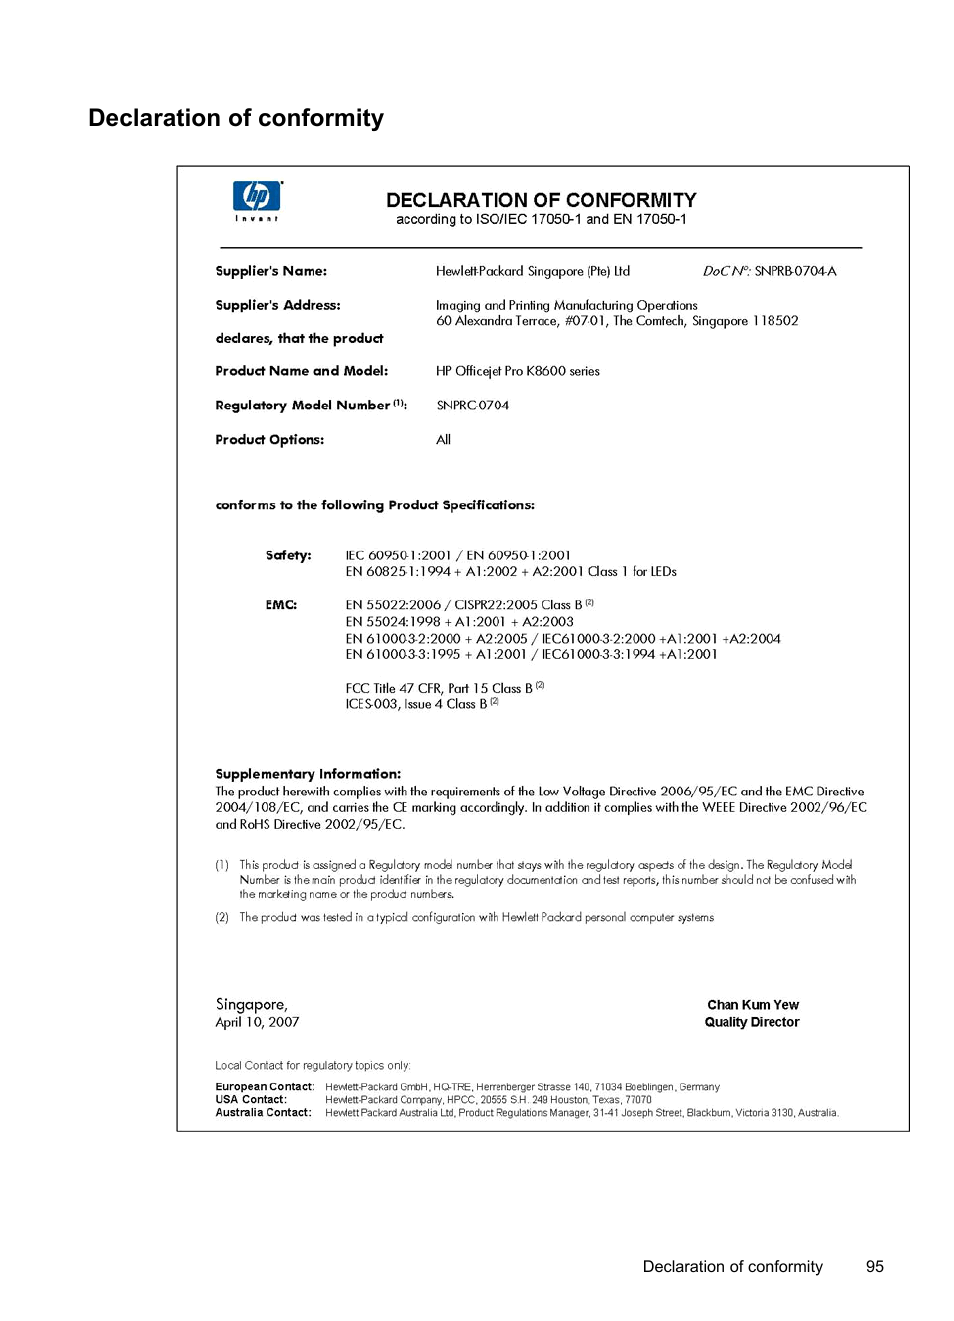 Declaration of conformity | HP Officejet Pro K8600 Printer User Manual |  Page 99 / 108